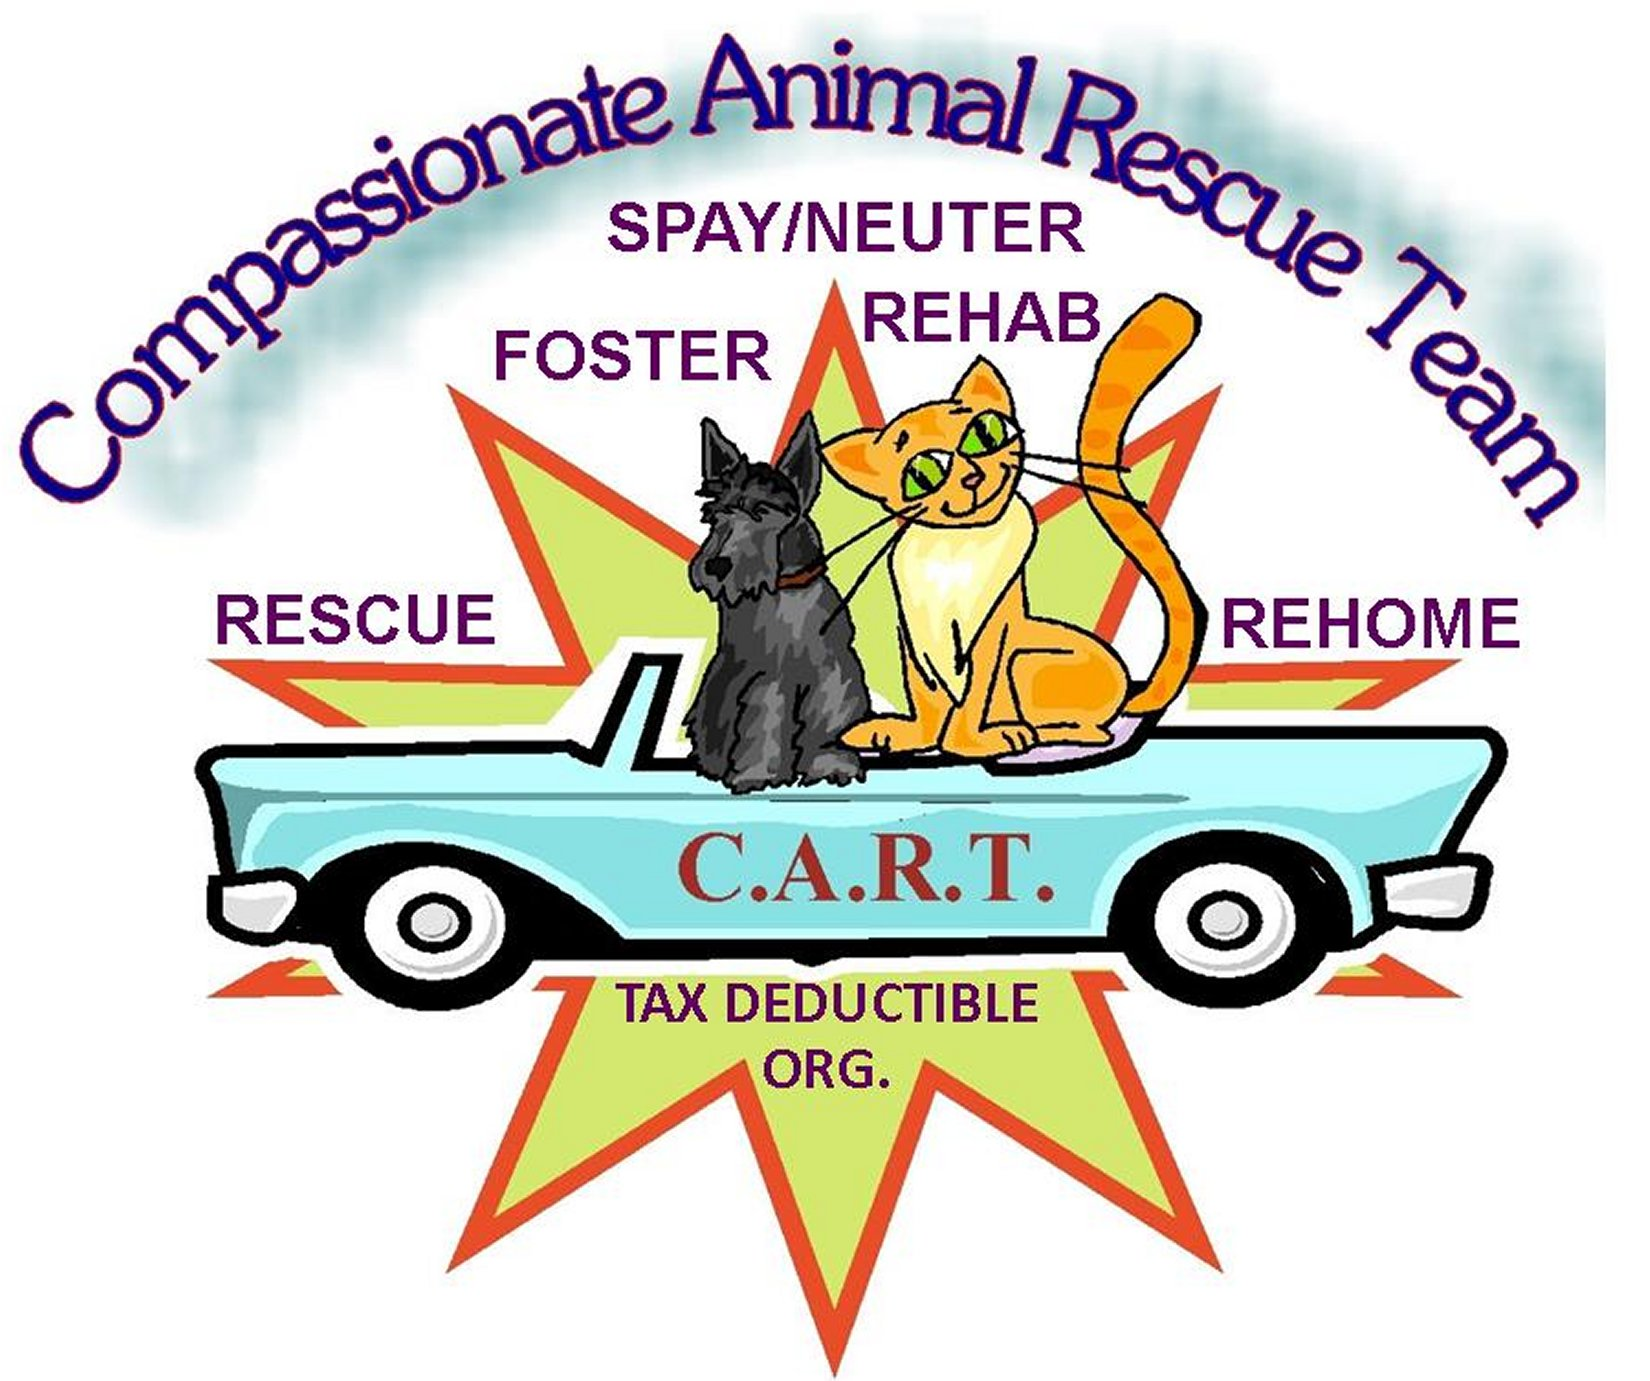 Compassionate Animal Rescue Team